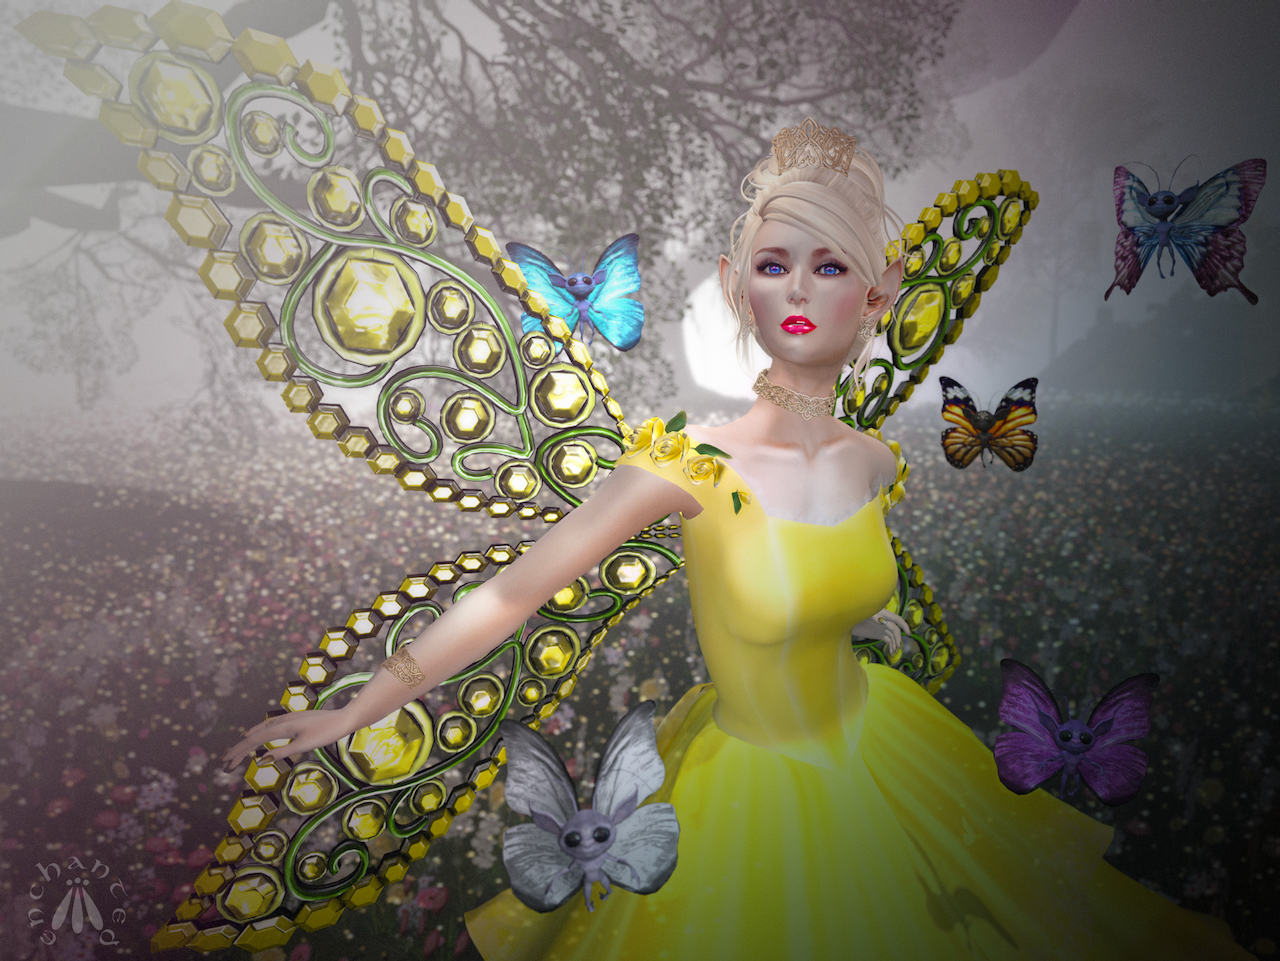 Enchantment B&TB 1 BLOG - 8